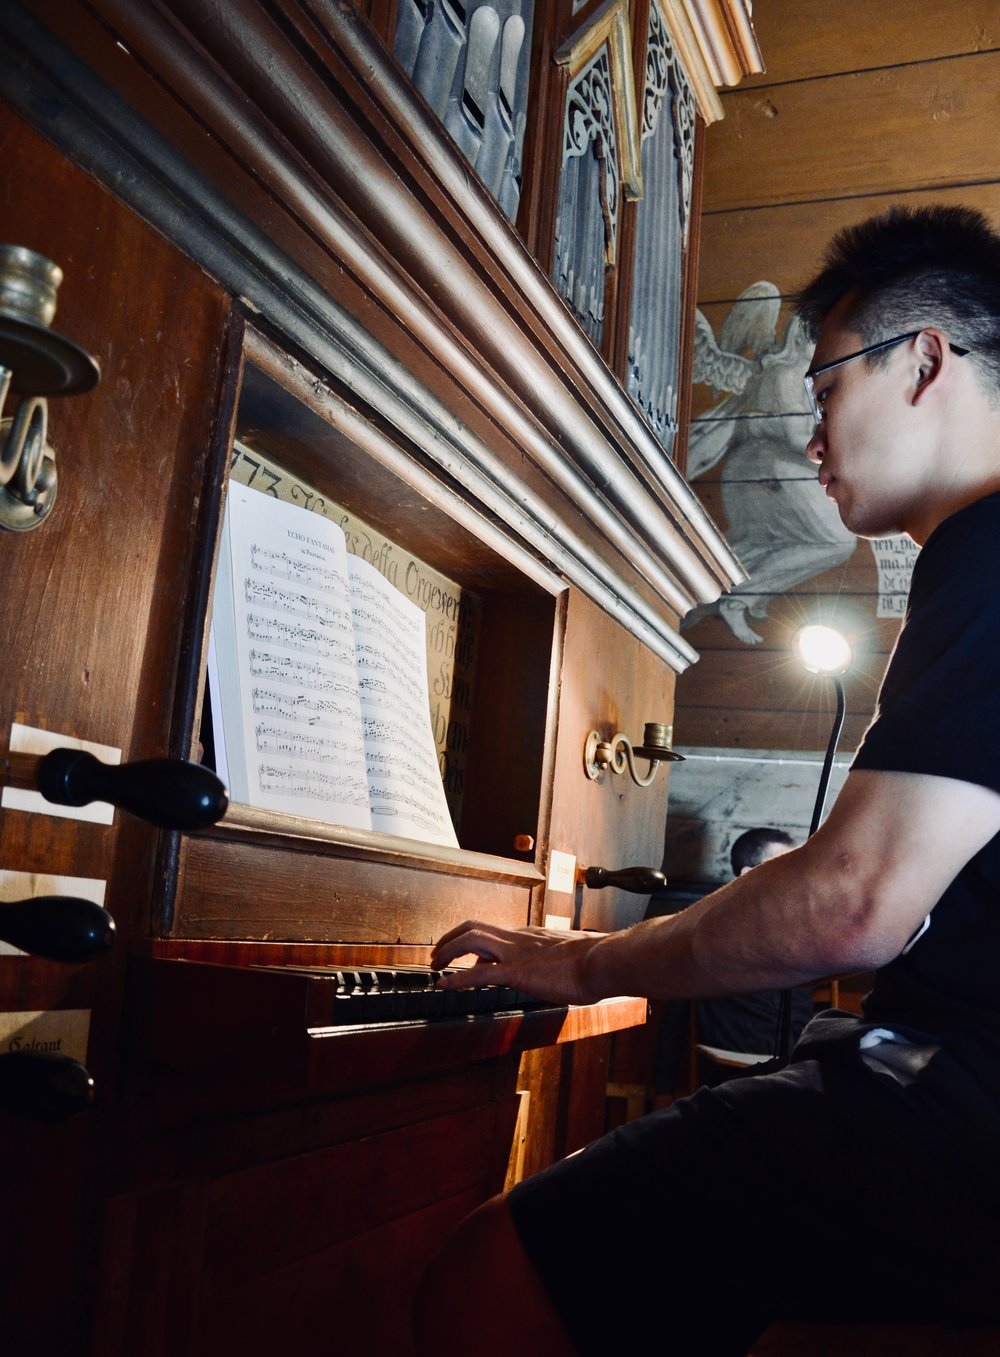 Adrian Cho plays the historic organ in the 1652 chapel, Kulturen, Lund, Sweden.